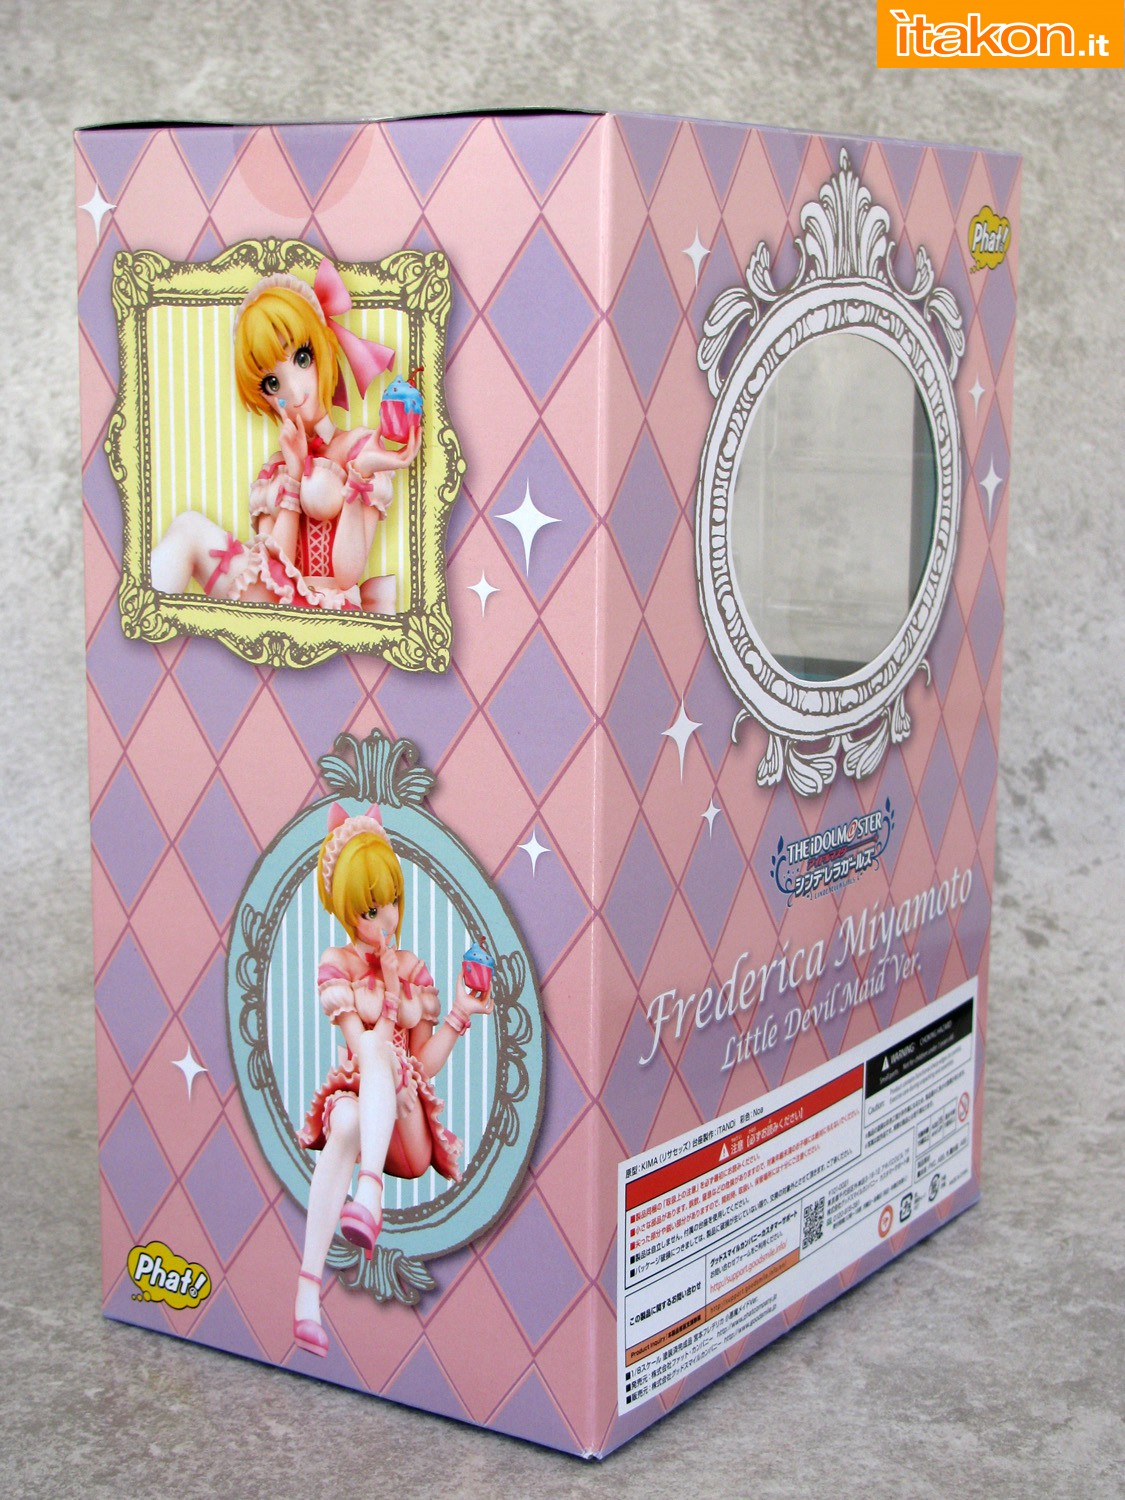 Link a 002 Frederica Miyamoto Little Devil Maid Phat recensione